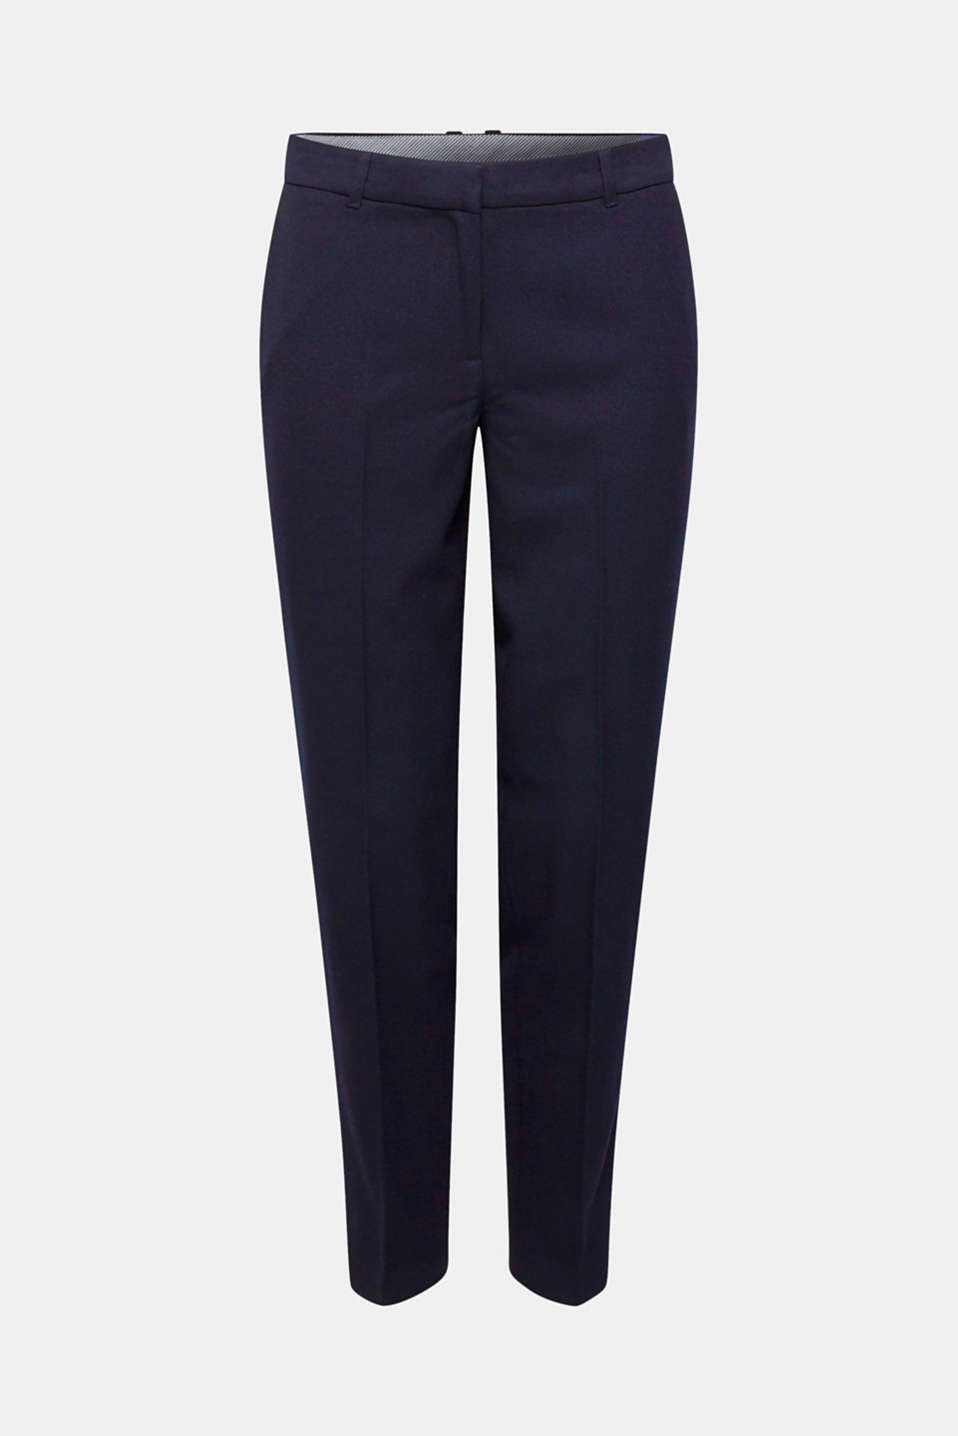 TONE-IN-TONE STRUCTURE Mix + Match Stretch Trousers, NAVY, detail image number 8